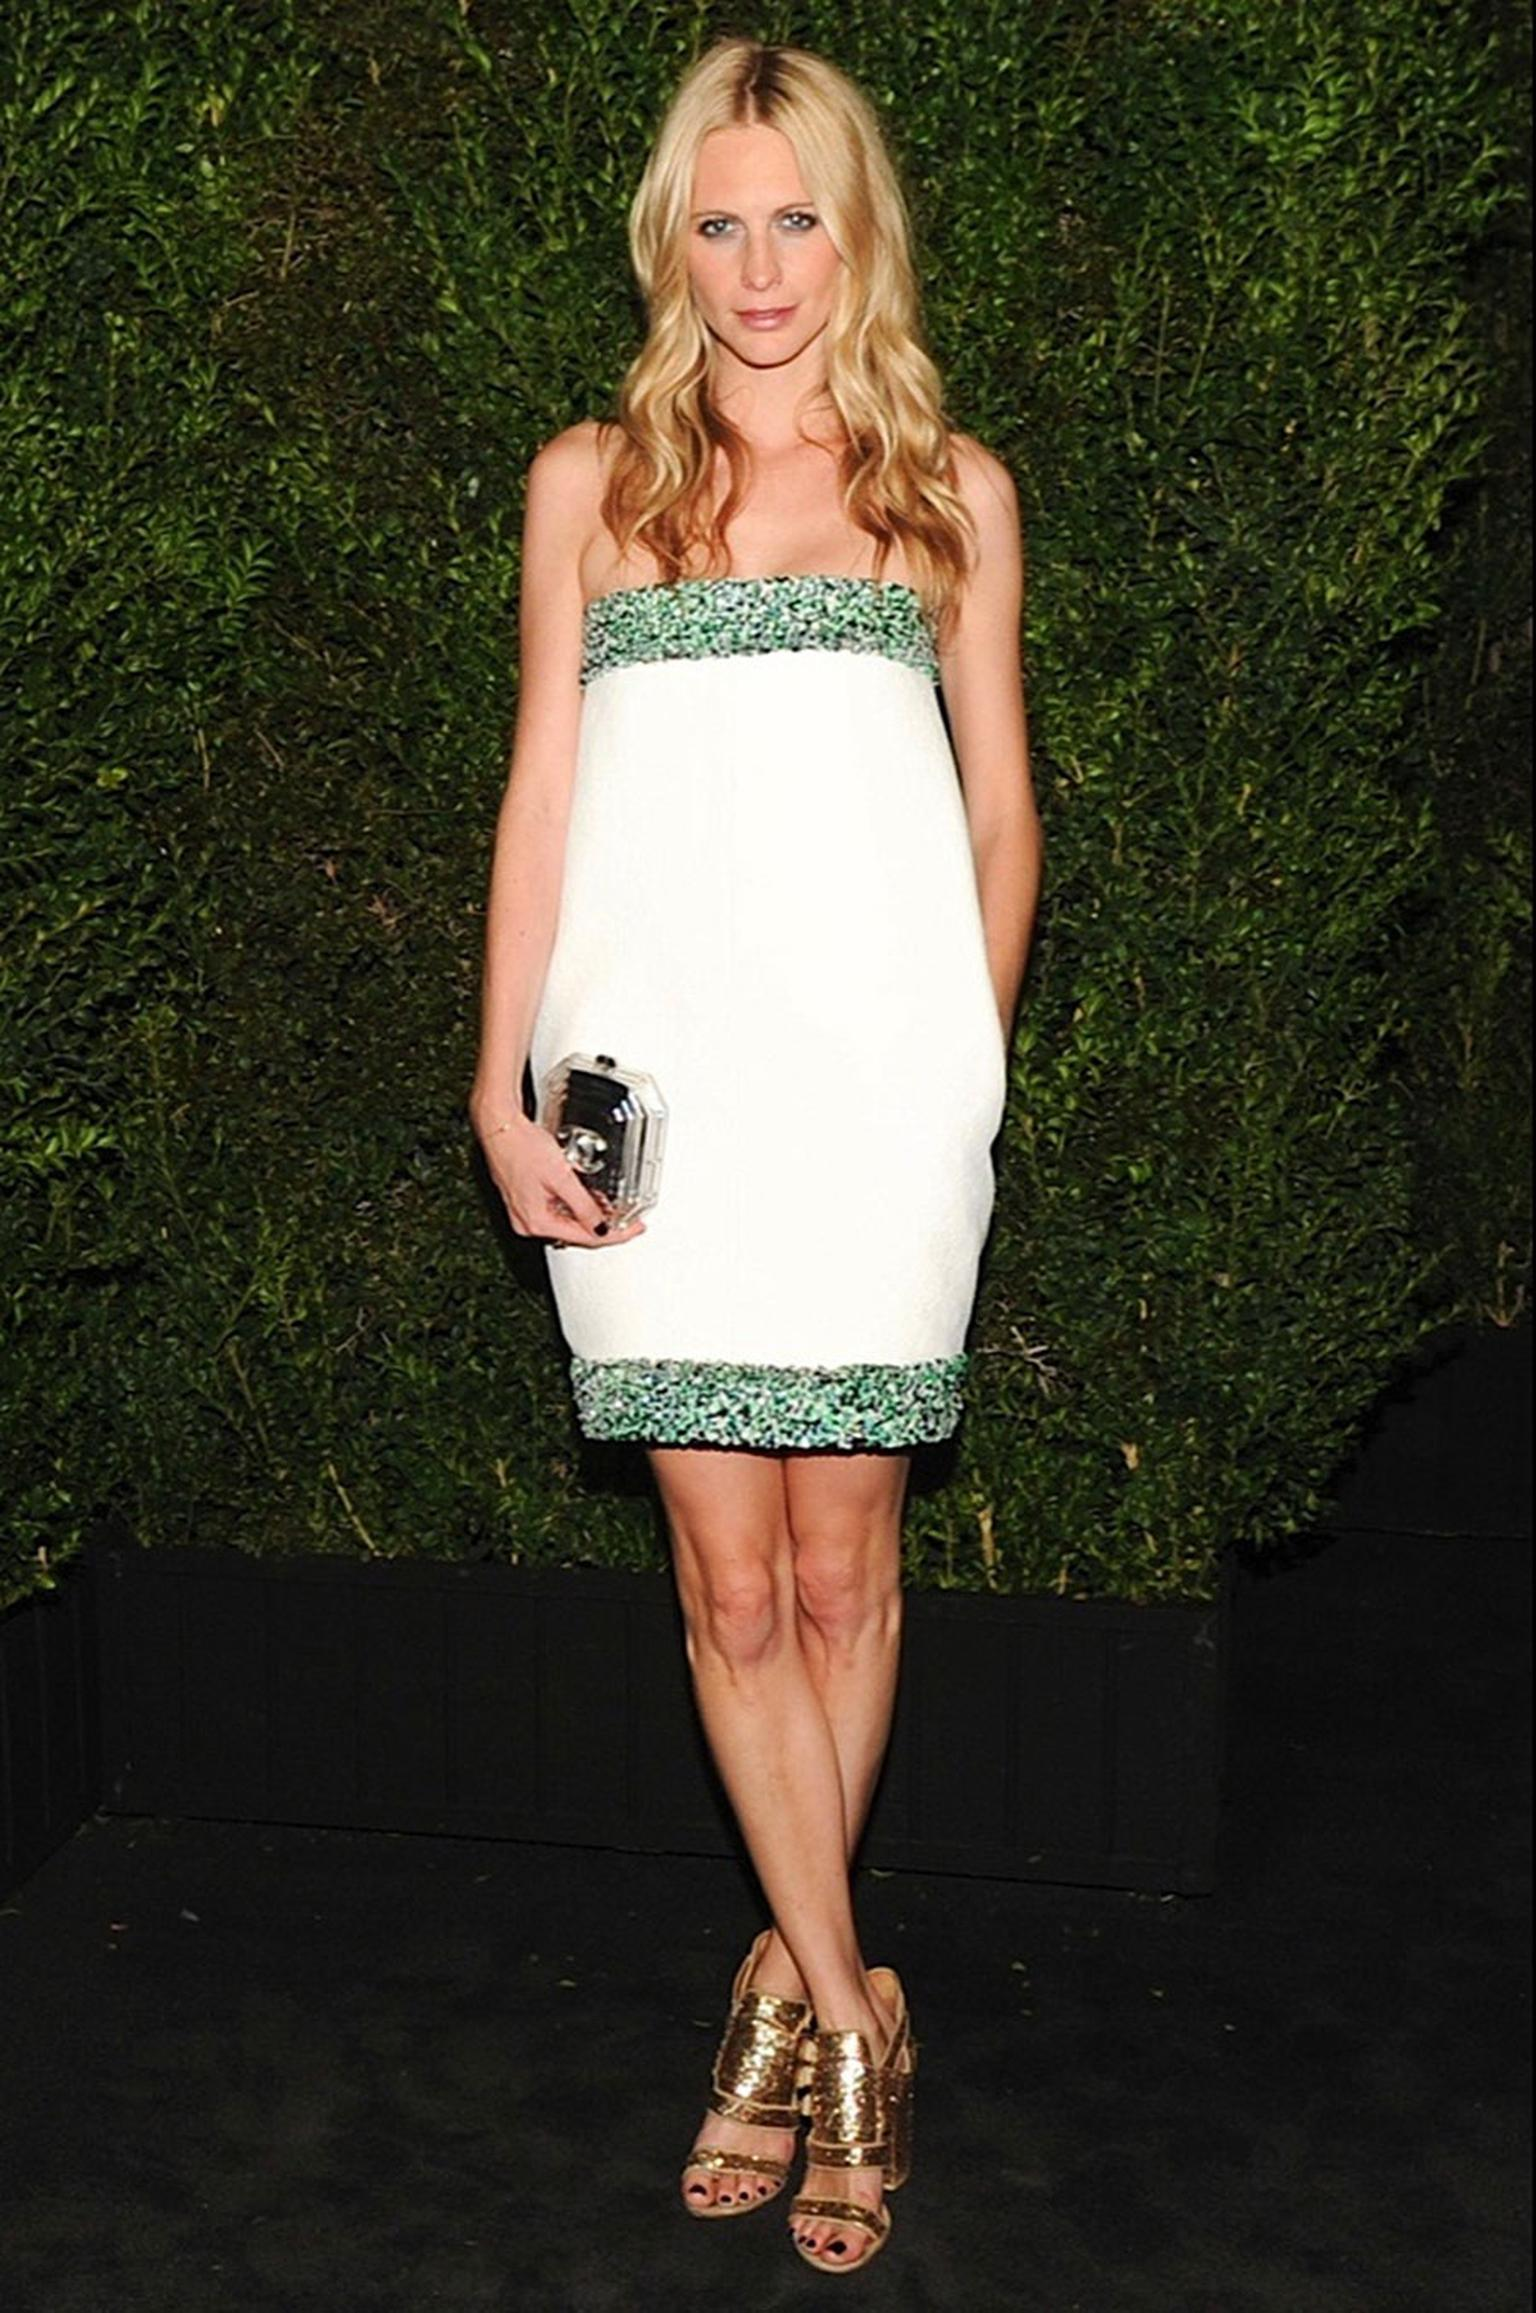 Poppy-Delevingne-Chanel-and-Charles-Finch-Oscars-Dinner-23-fevrier-2013-bis.jpg